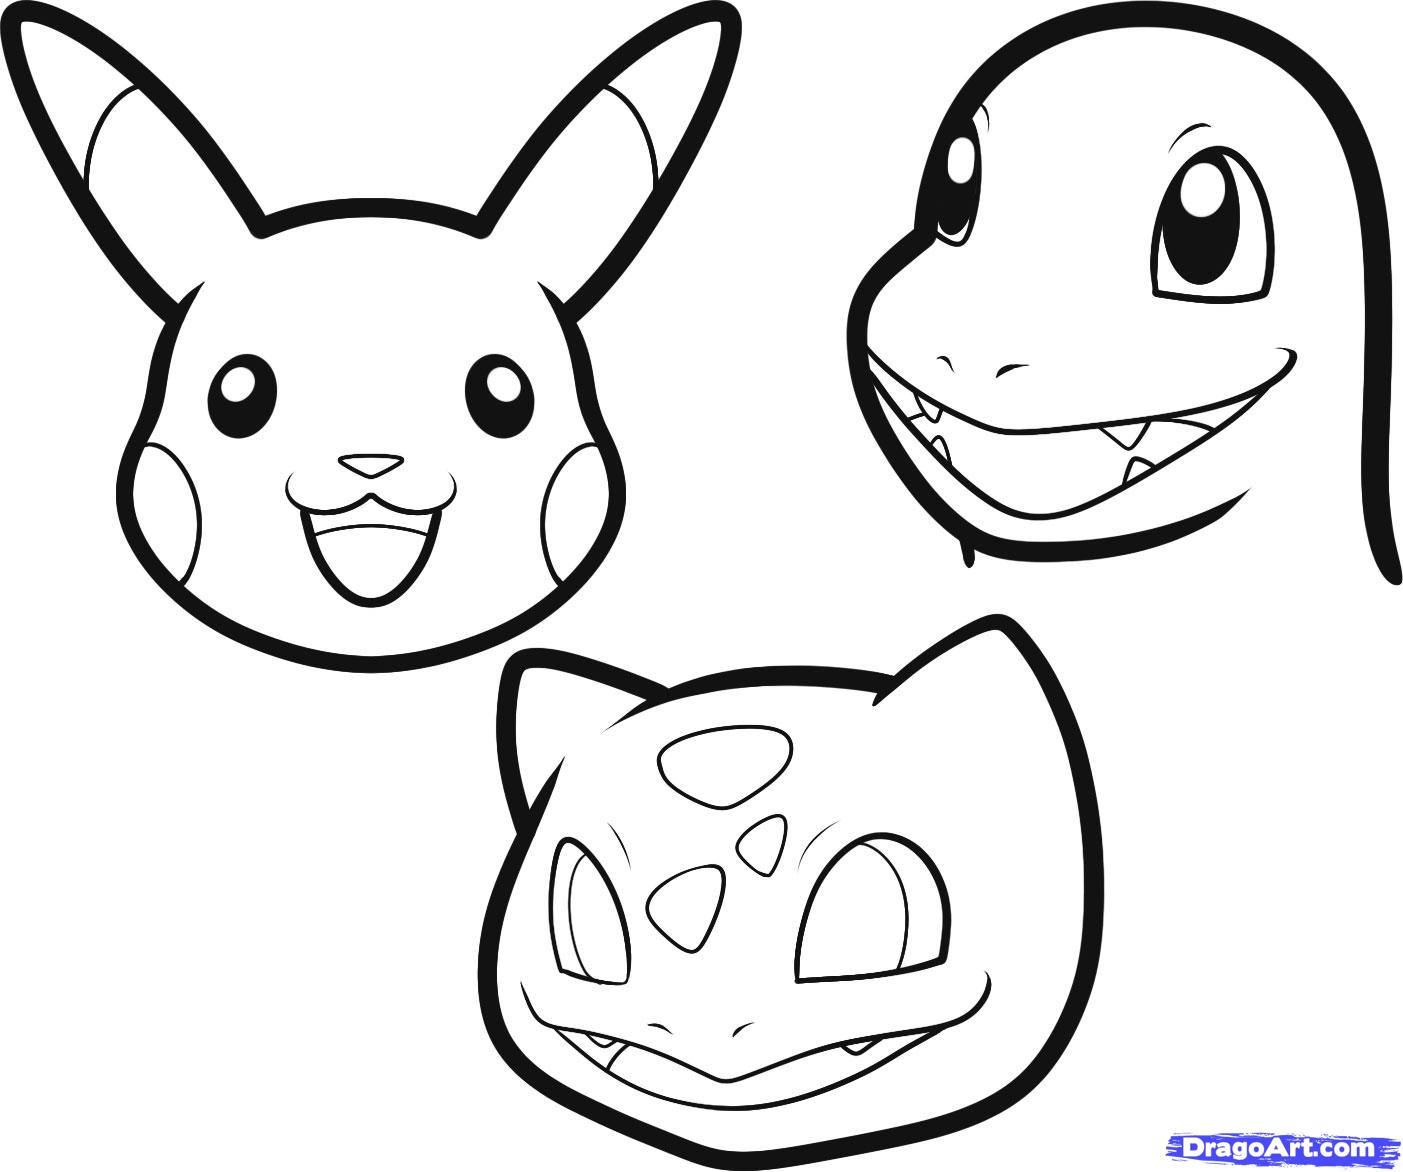 1403x1172 Easy To Draw Pokemon Characters Easy Pikachu Drawing How To Draw